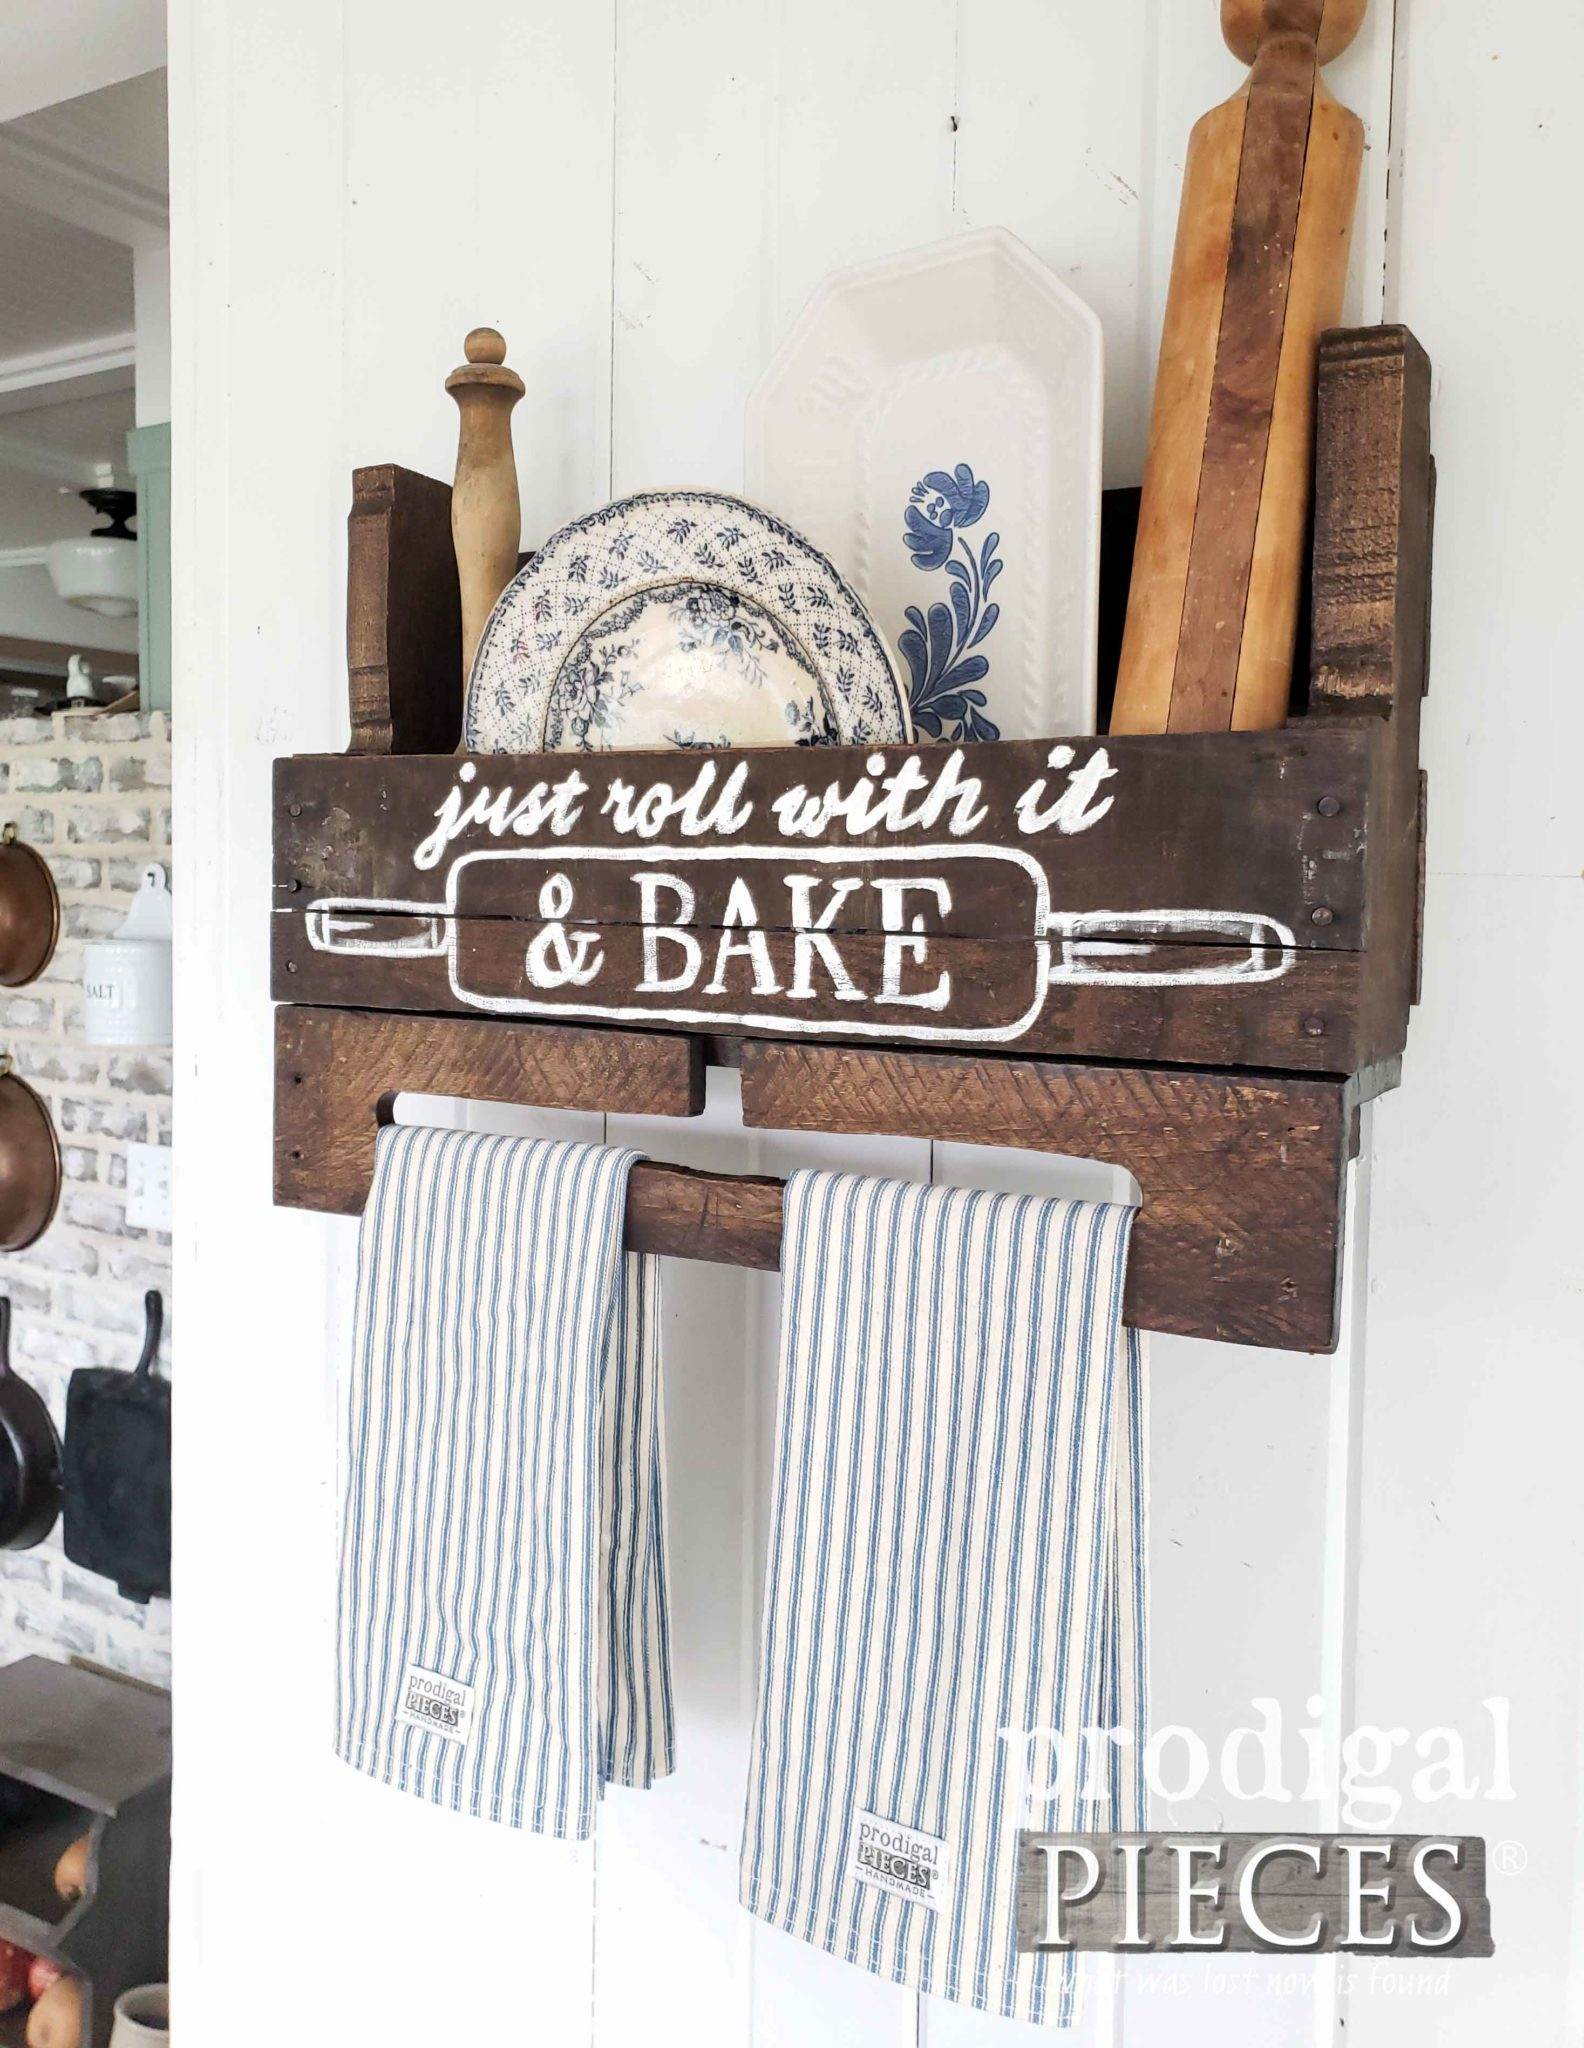 Handmade Farmhouse Decor for your home from creator Larissa of Prodigal Pieces | prodigalpieces.com #prodigalpieces #diy #handmade #kitchen #storage #home #homedecor